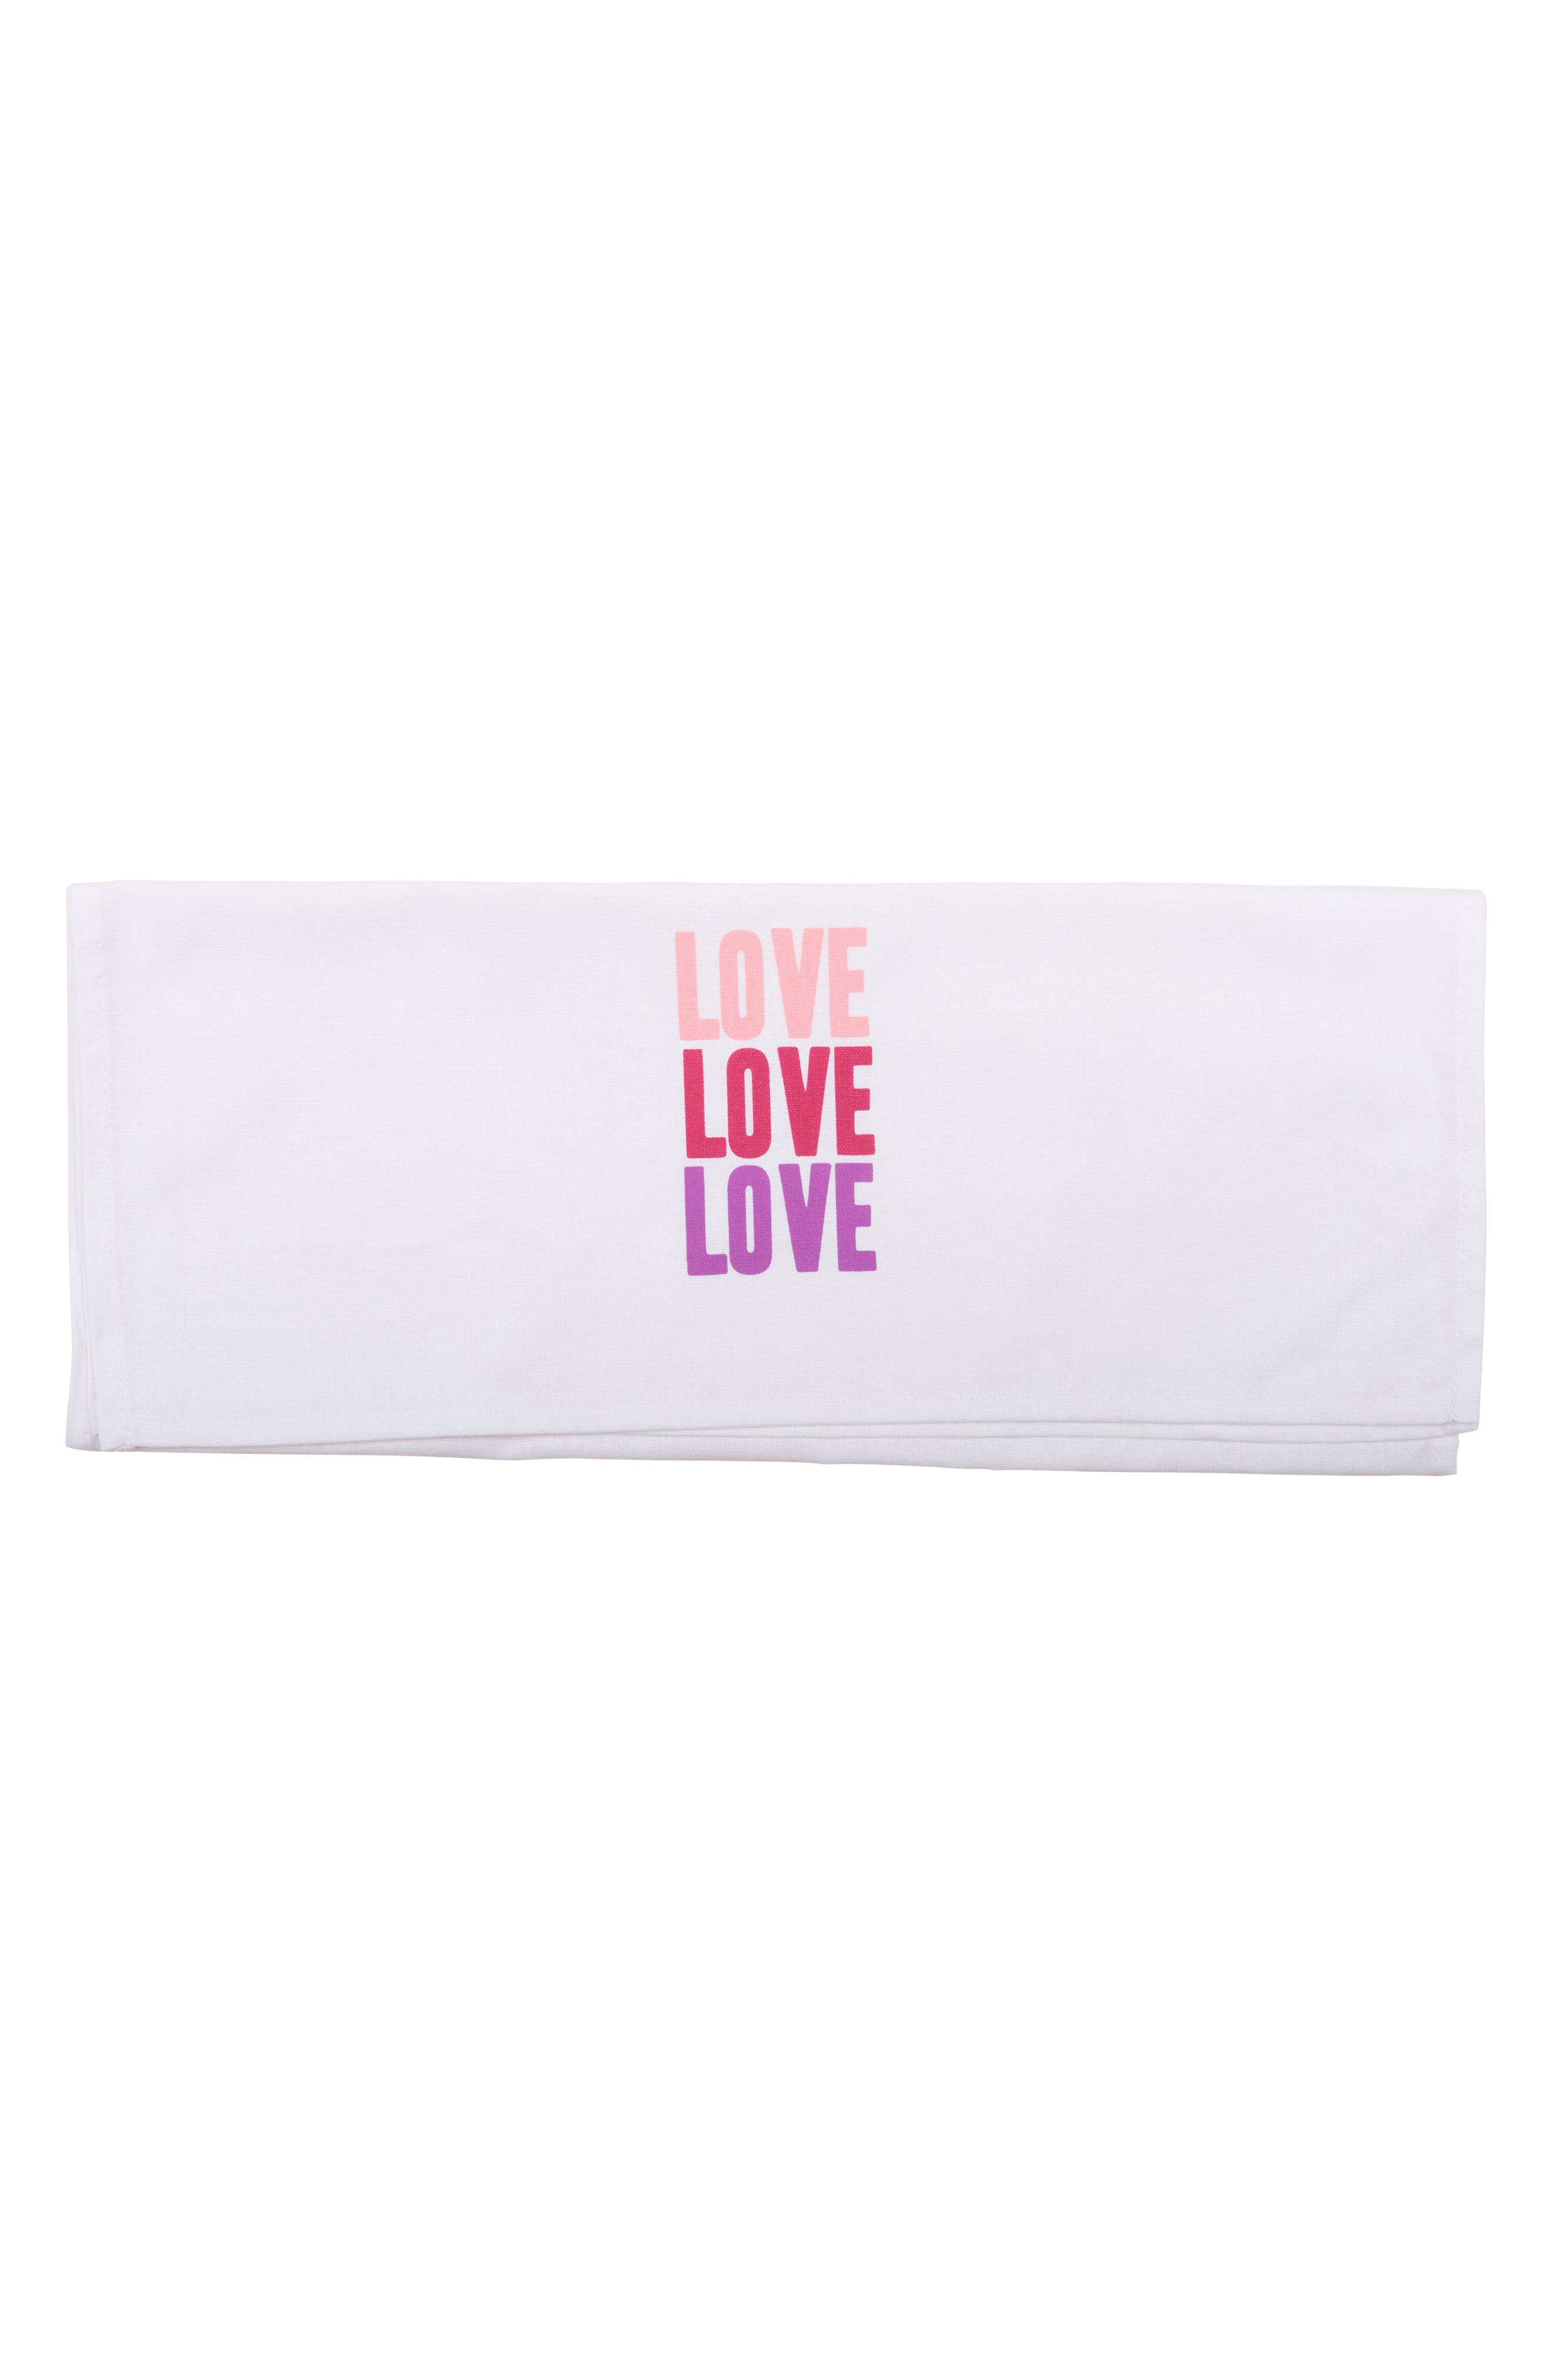 Peace Love Happiness Set of 3 Tea Towels,                             Alternate thumbnail 4, color,                             100